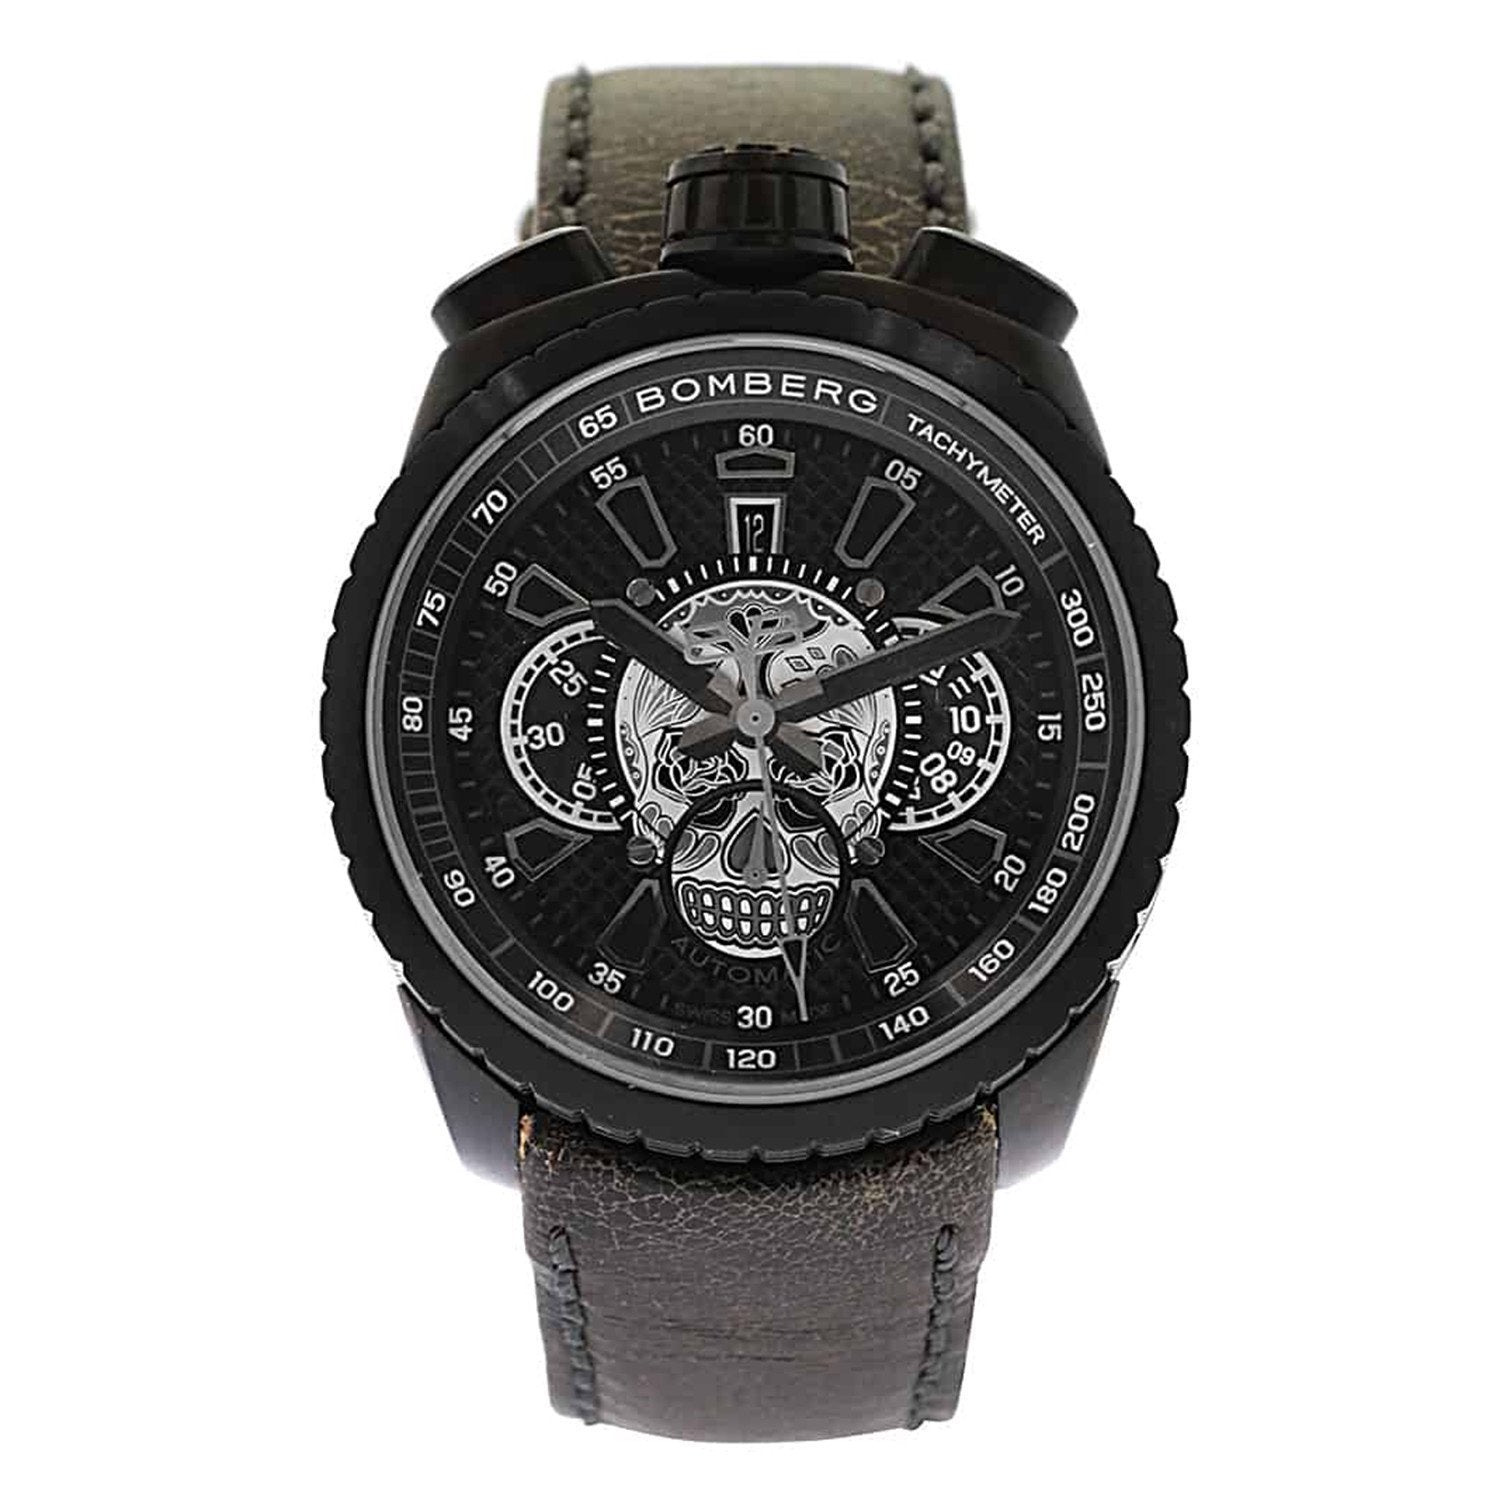 Bomberg BOLT-68 Automatic Chronograph Skull Limited Edition - Watches & Crystals